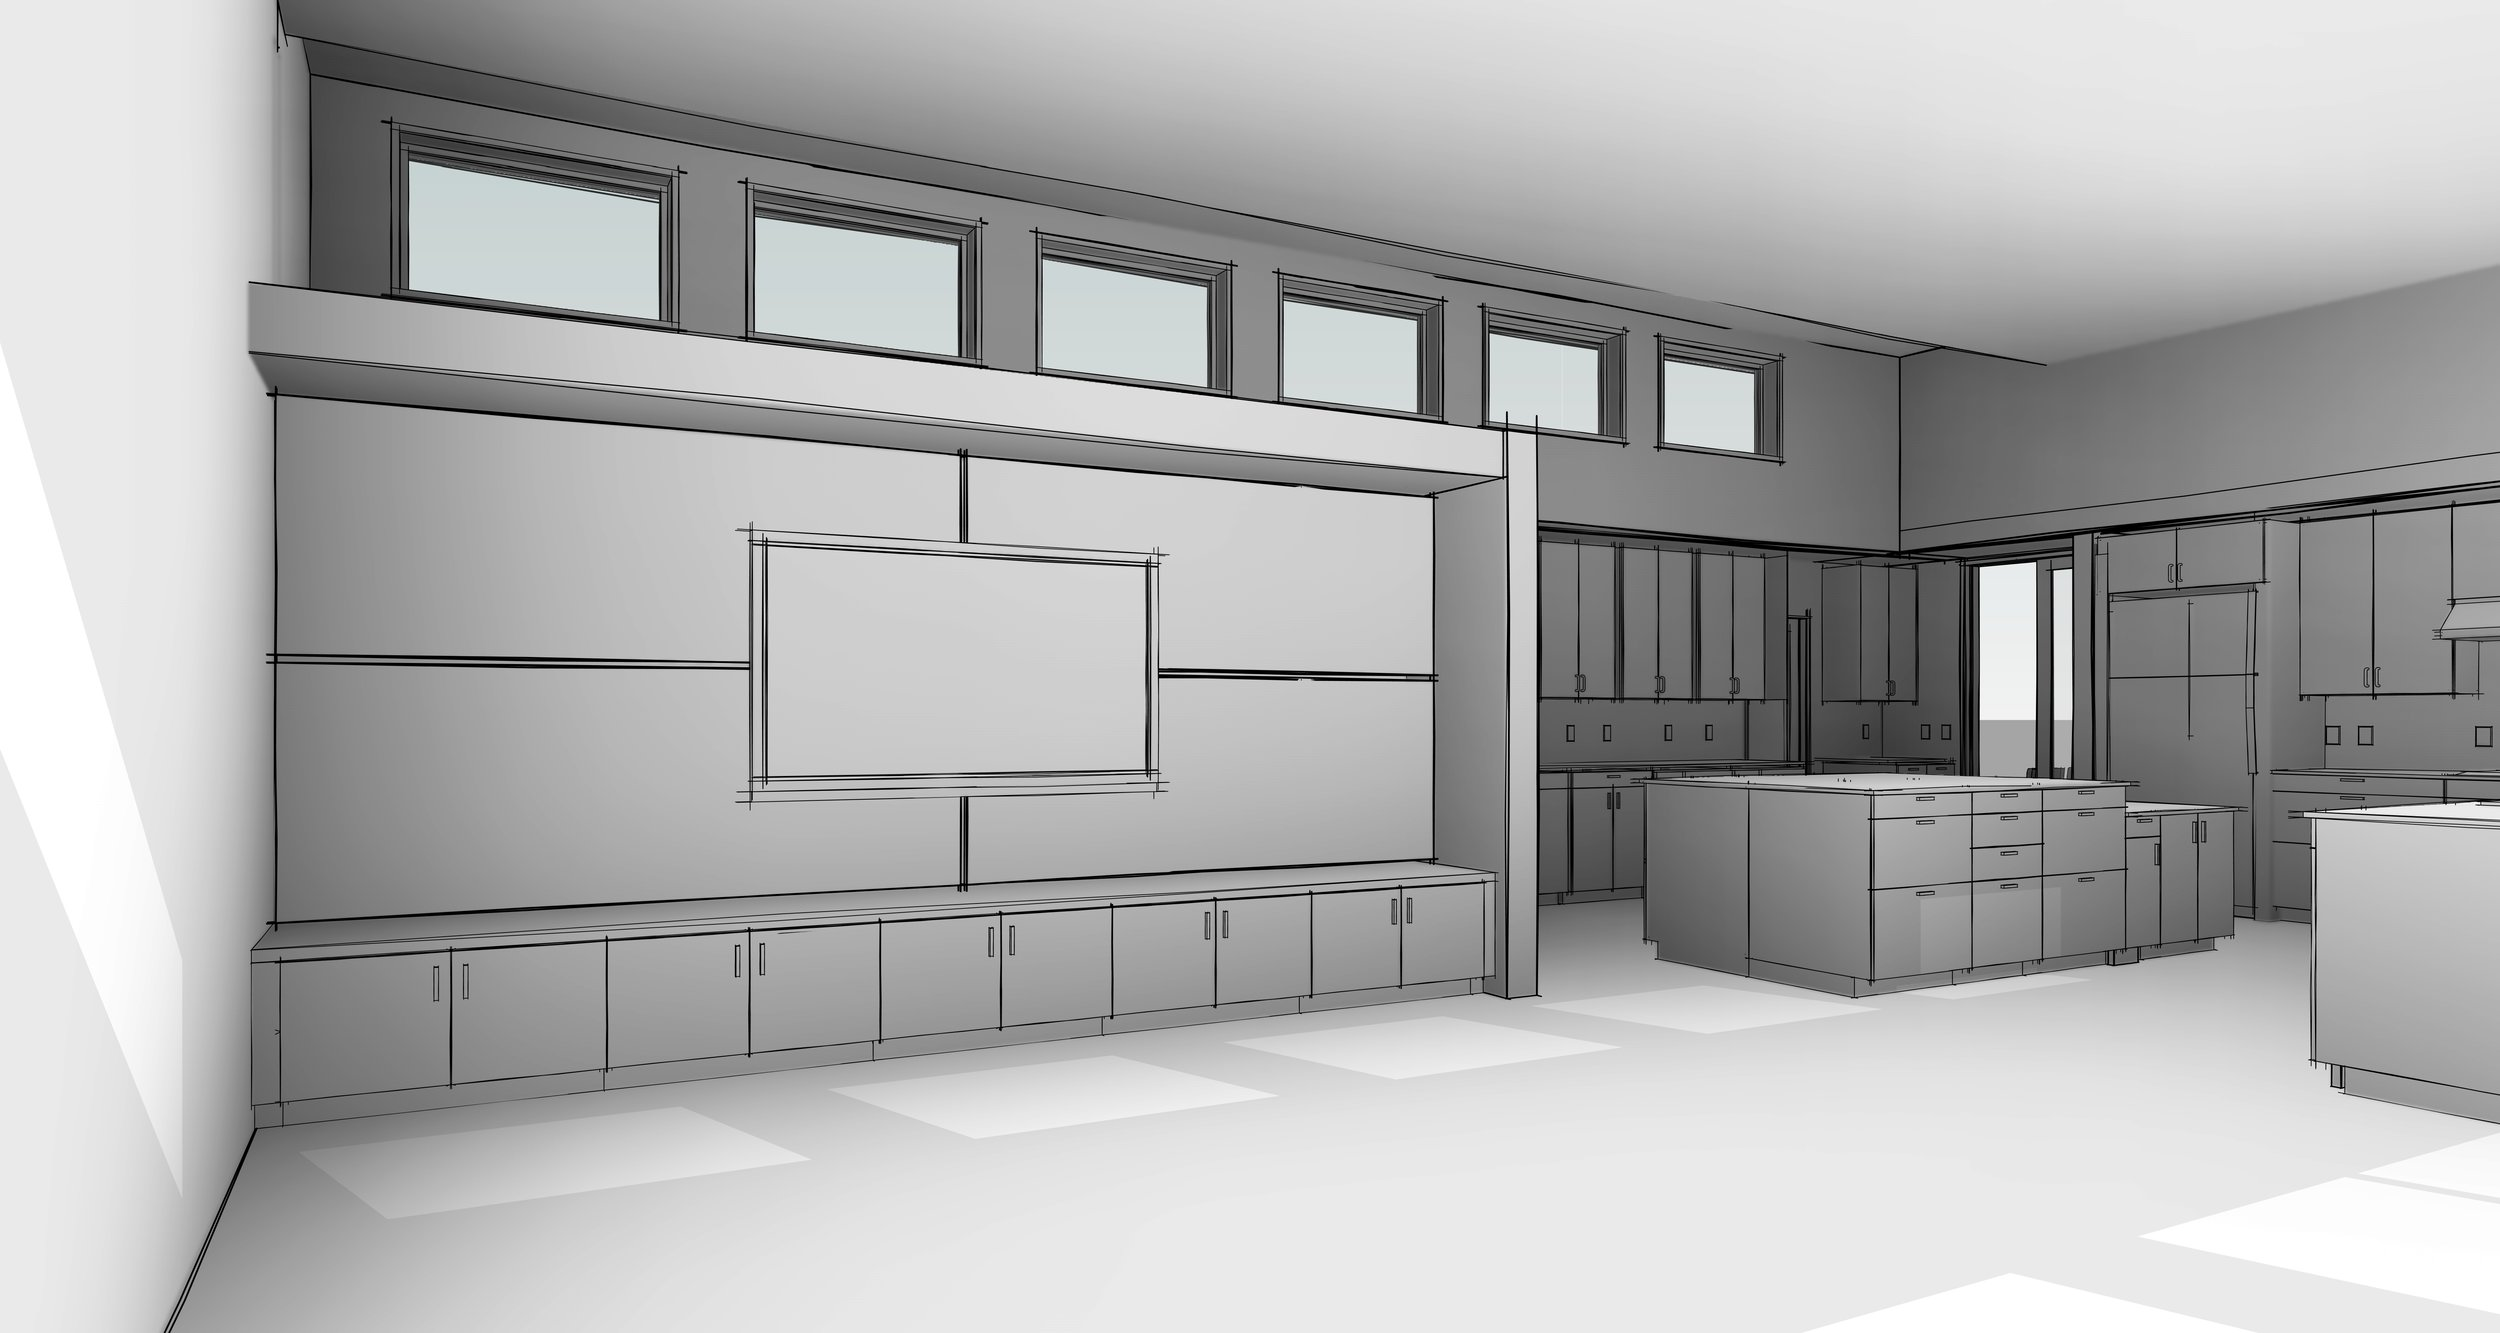 3M Model of the Media Wall-Looking towards Kitchen